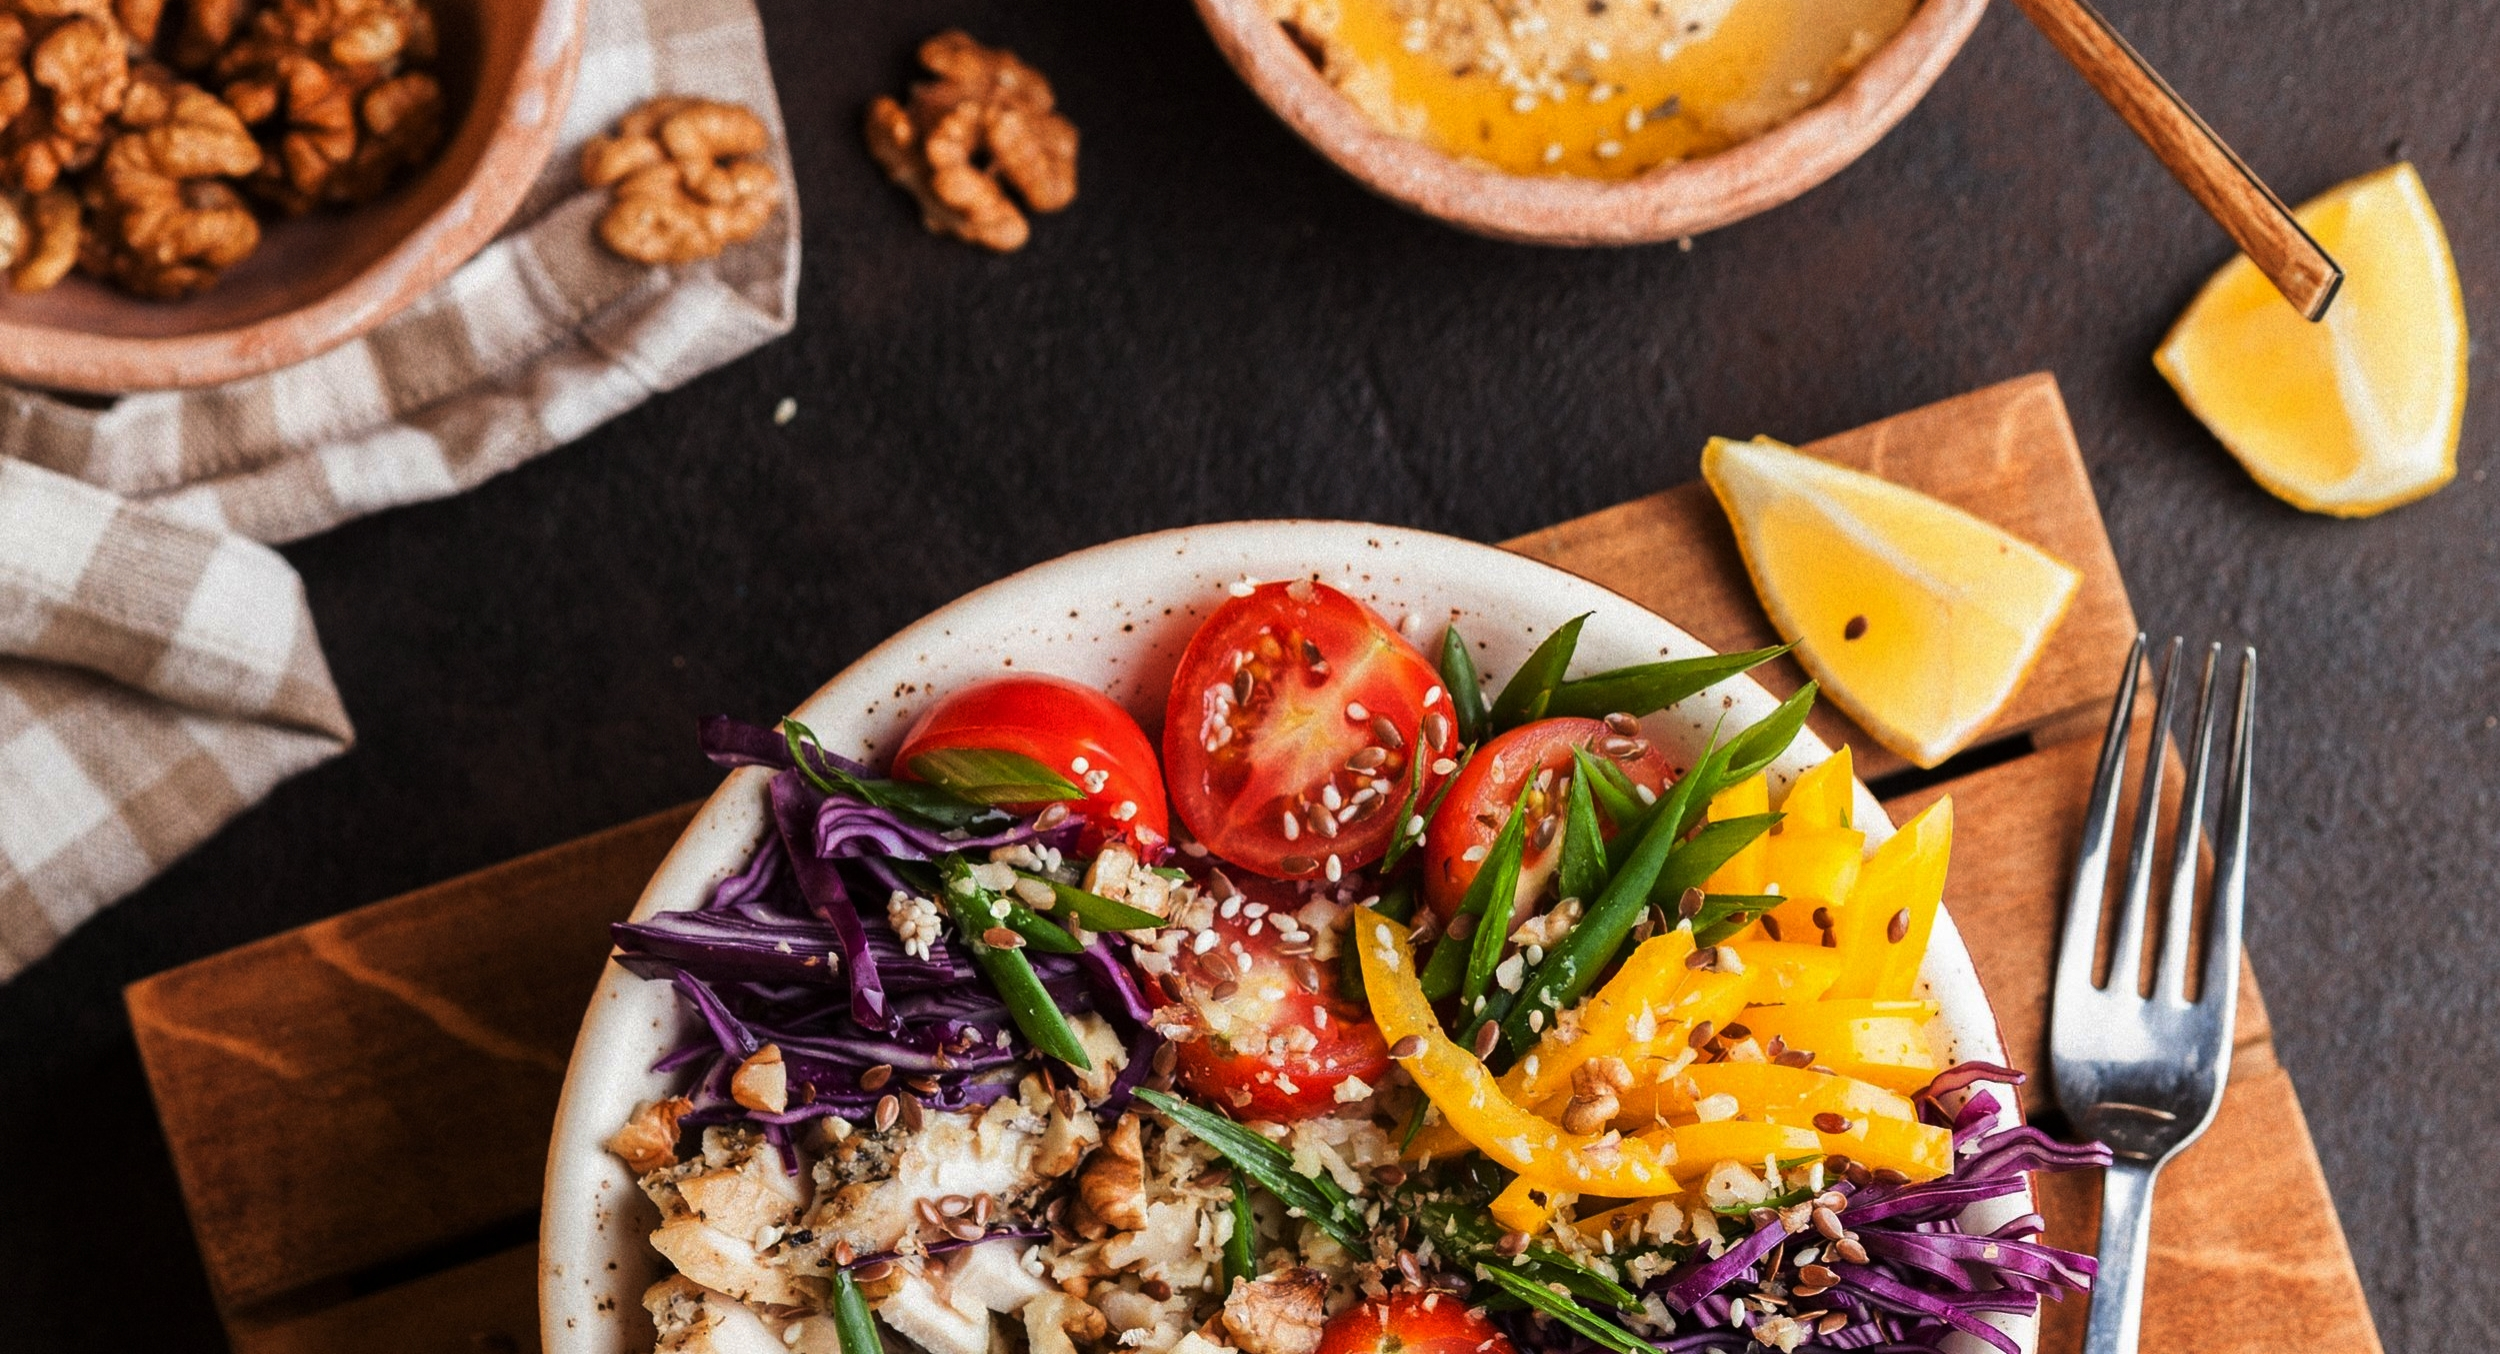 Add Nutrition Coaching for $50 - Get in the best shape of your life by adding our Online Nutrition Coachingpackage, powered by Precision Nutrition, for $50 a month.